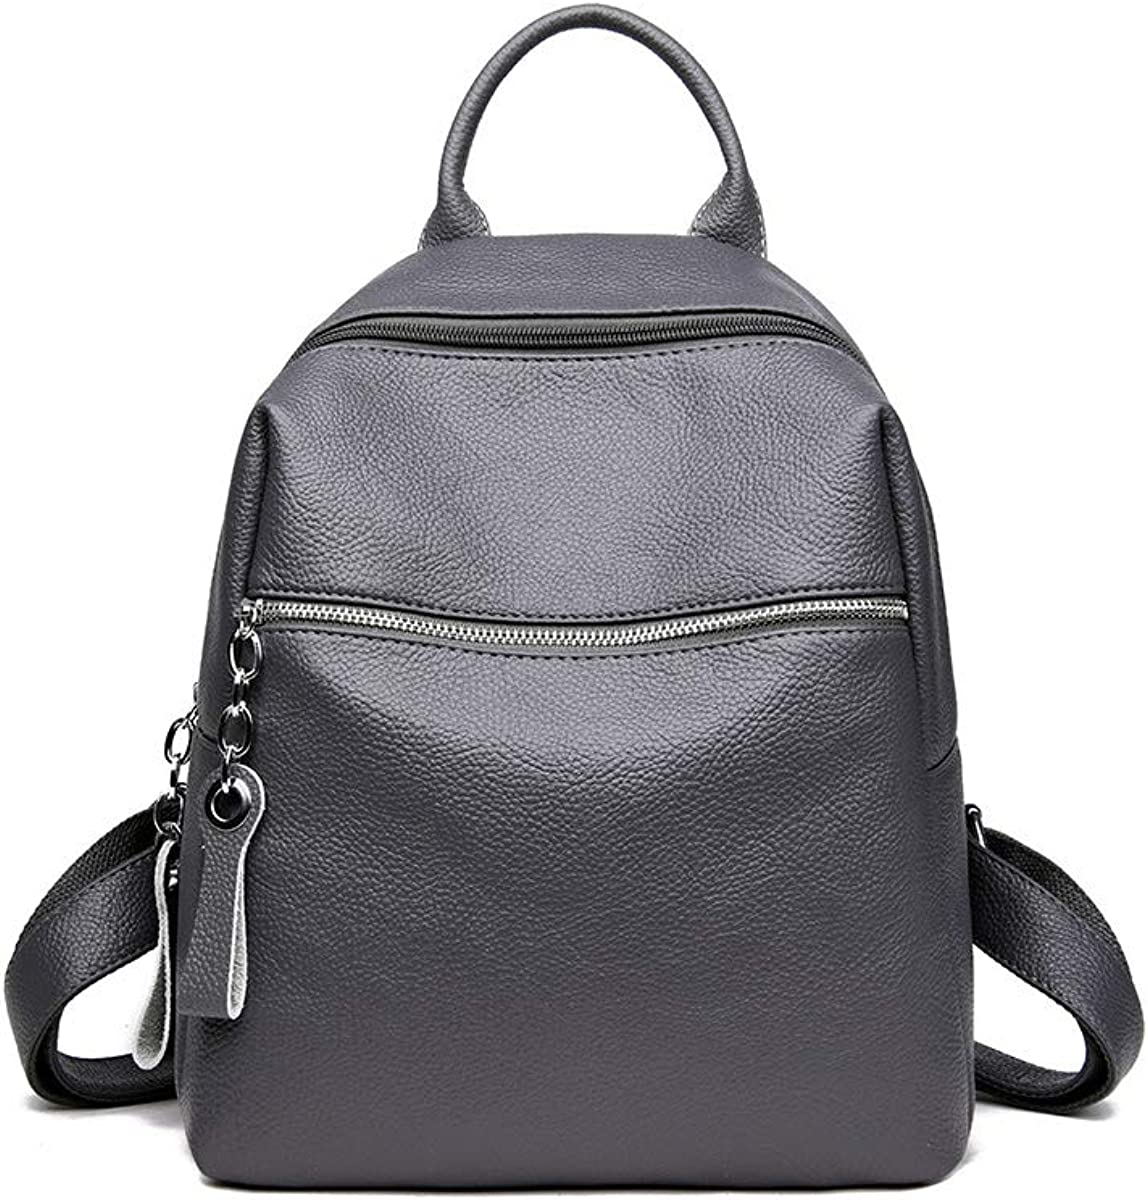 ZHICHUANG Girls Multipurpose Backpack for Daily Travel//Outdoor//Travel//School//Work//Fashion//Leisure Simple and Stylish for Women /& Men Black//Gray//Blue//Red PU Leather